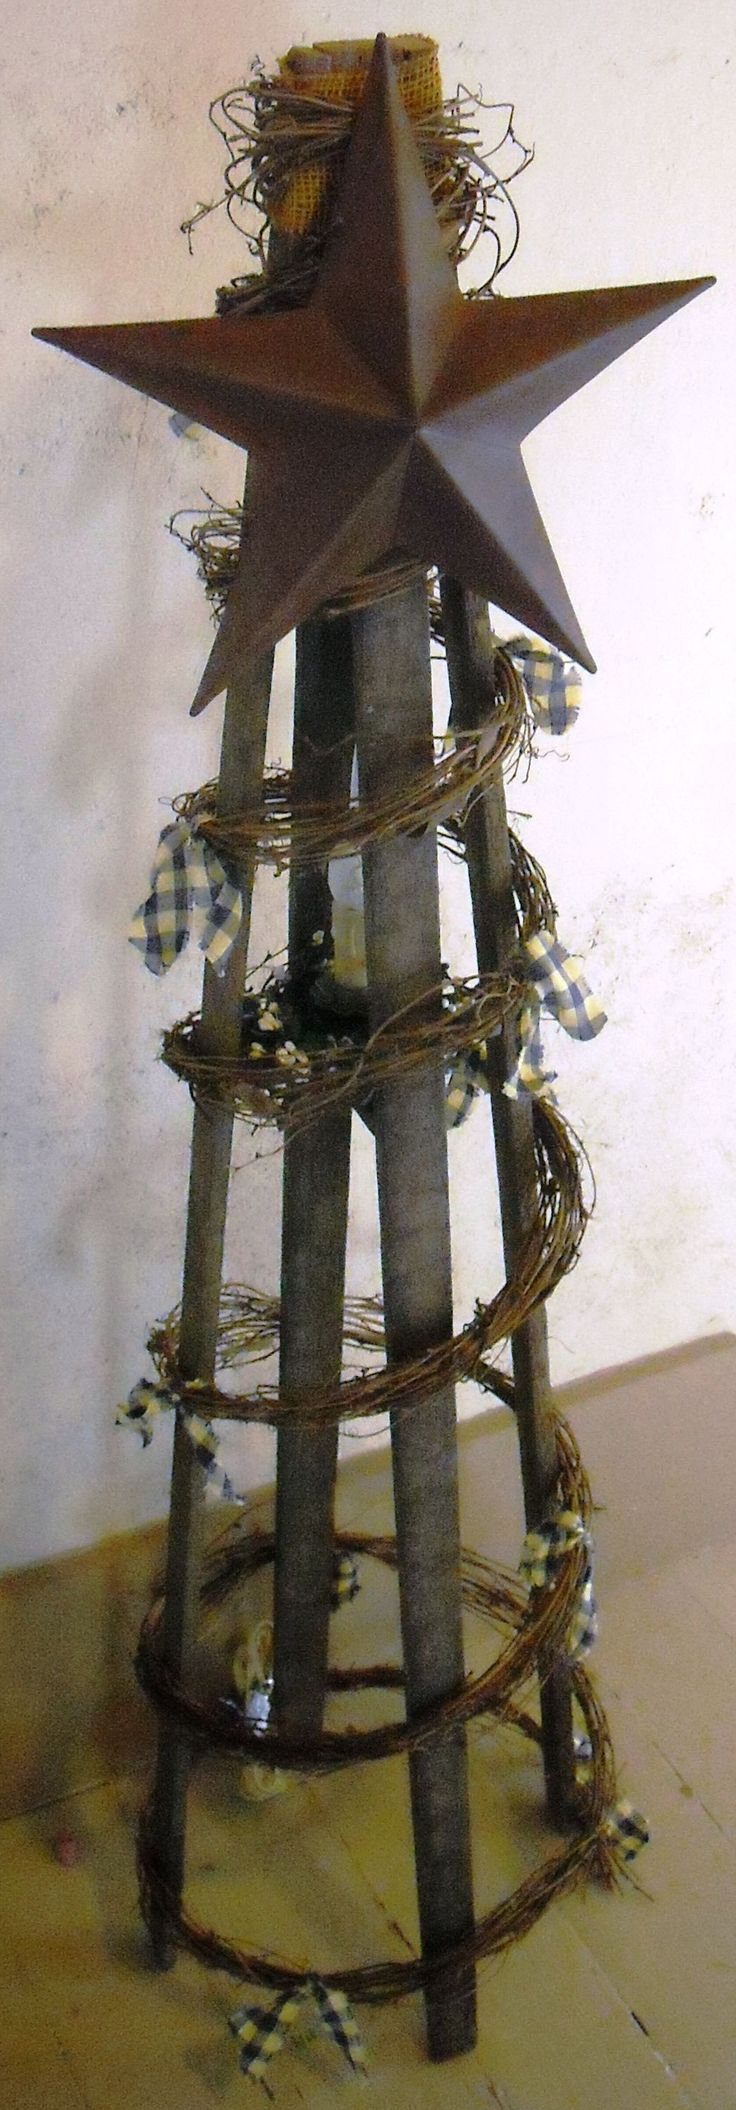 Primitive christmas ideas to make - Tobacco Lath Tree And Look Up Other Wood Lath Projects Find This Pin And More On Crafts Christmas Primitive